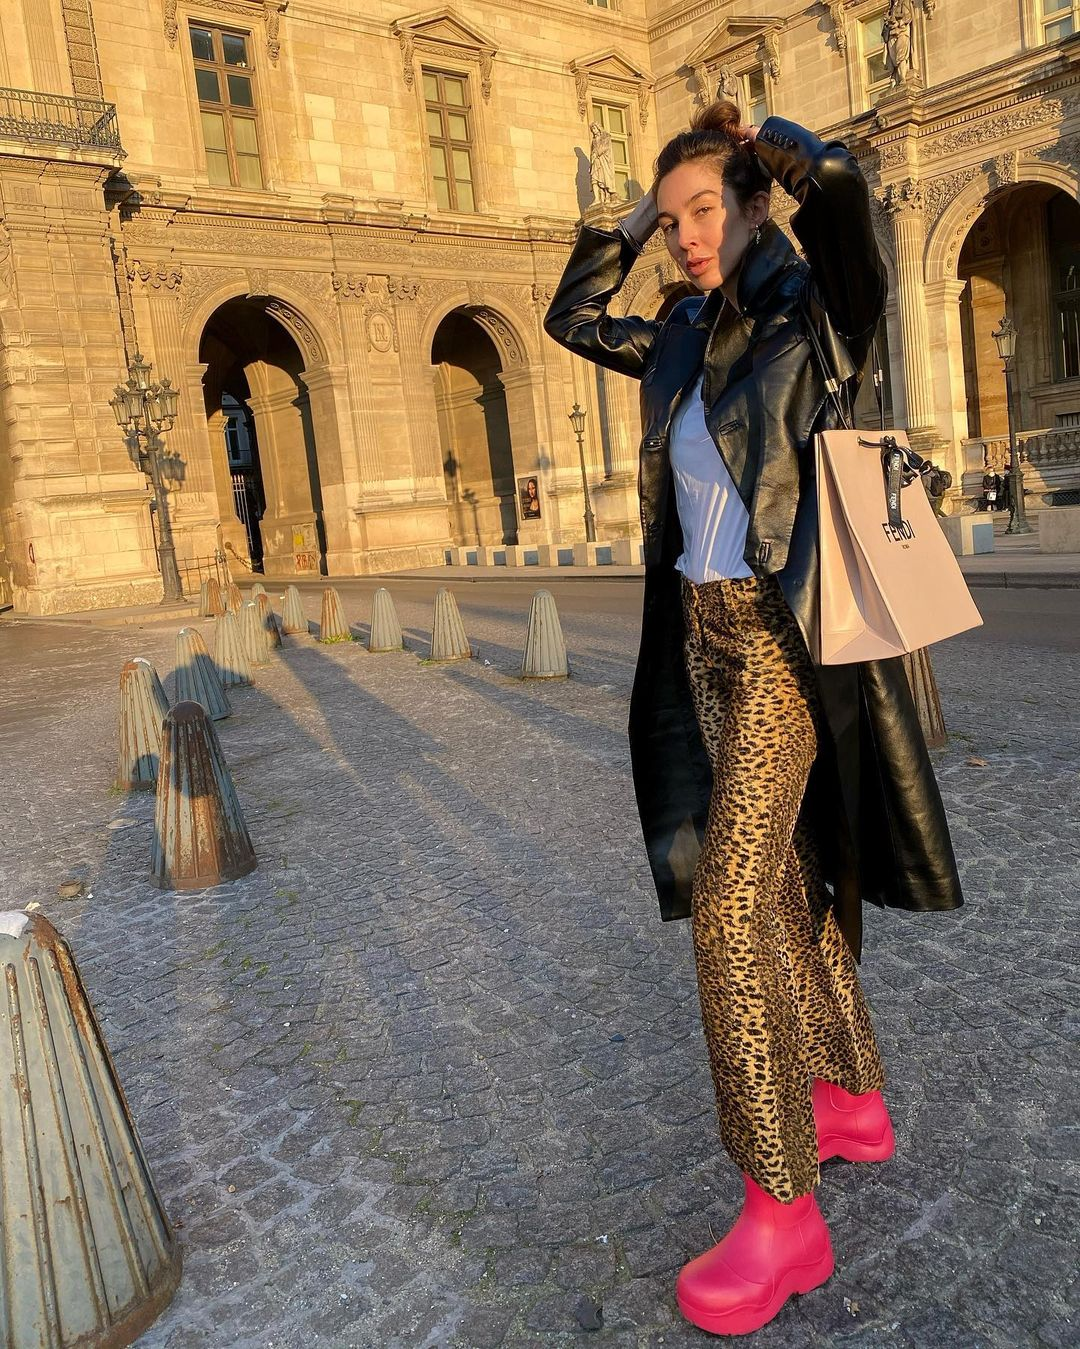 estelle-chemouny-bottega-veneta-the-puddle-lollipop-instagram